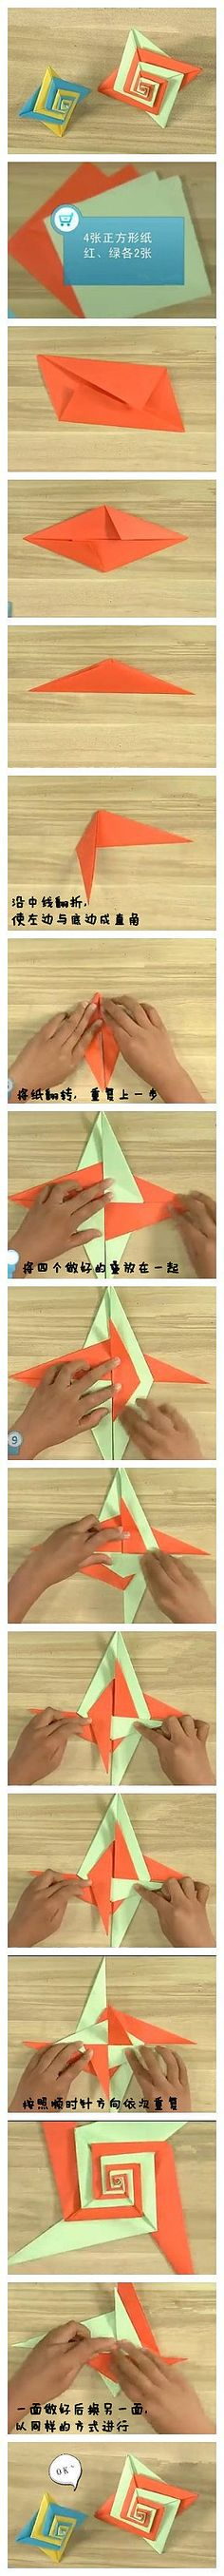 Photo diagrams for Tomoko Fuse's origami spiral.